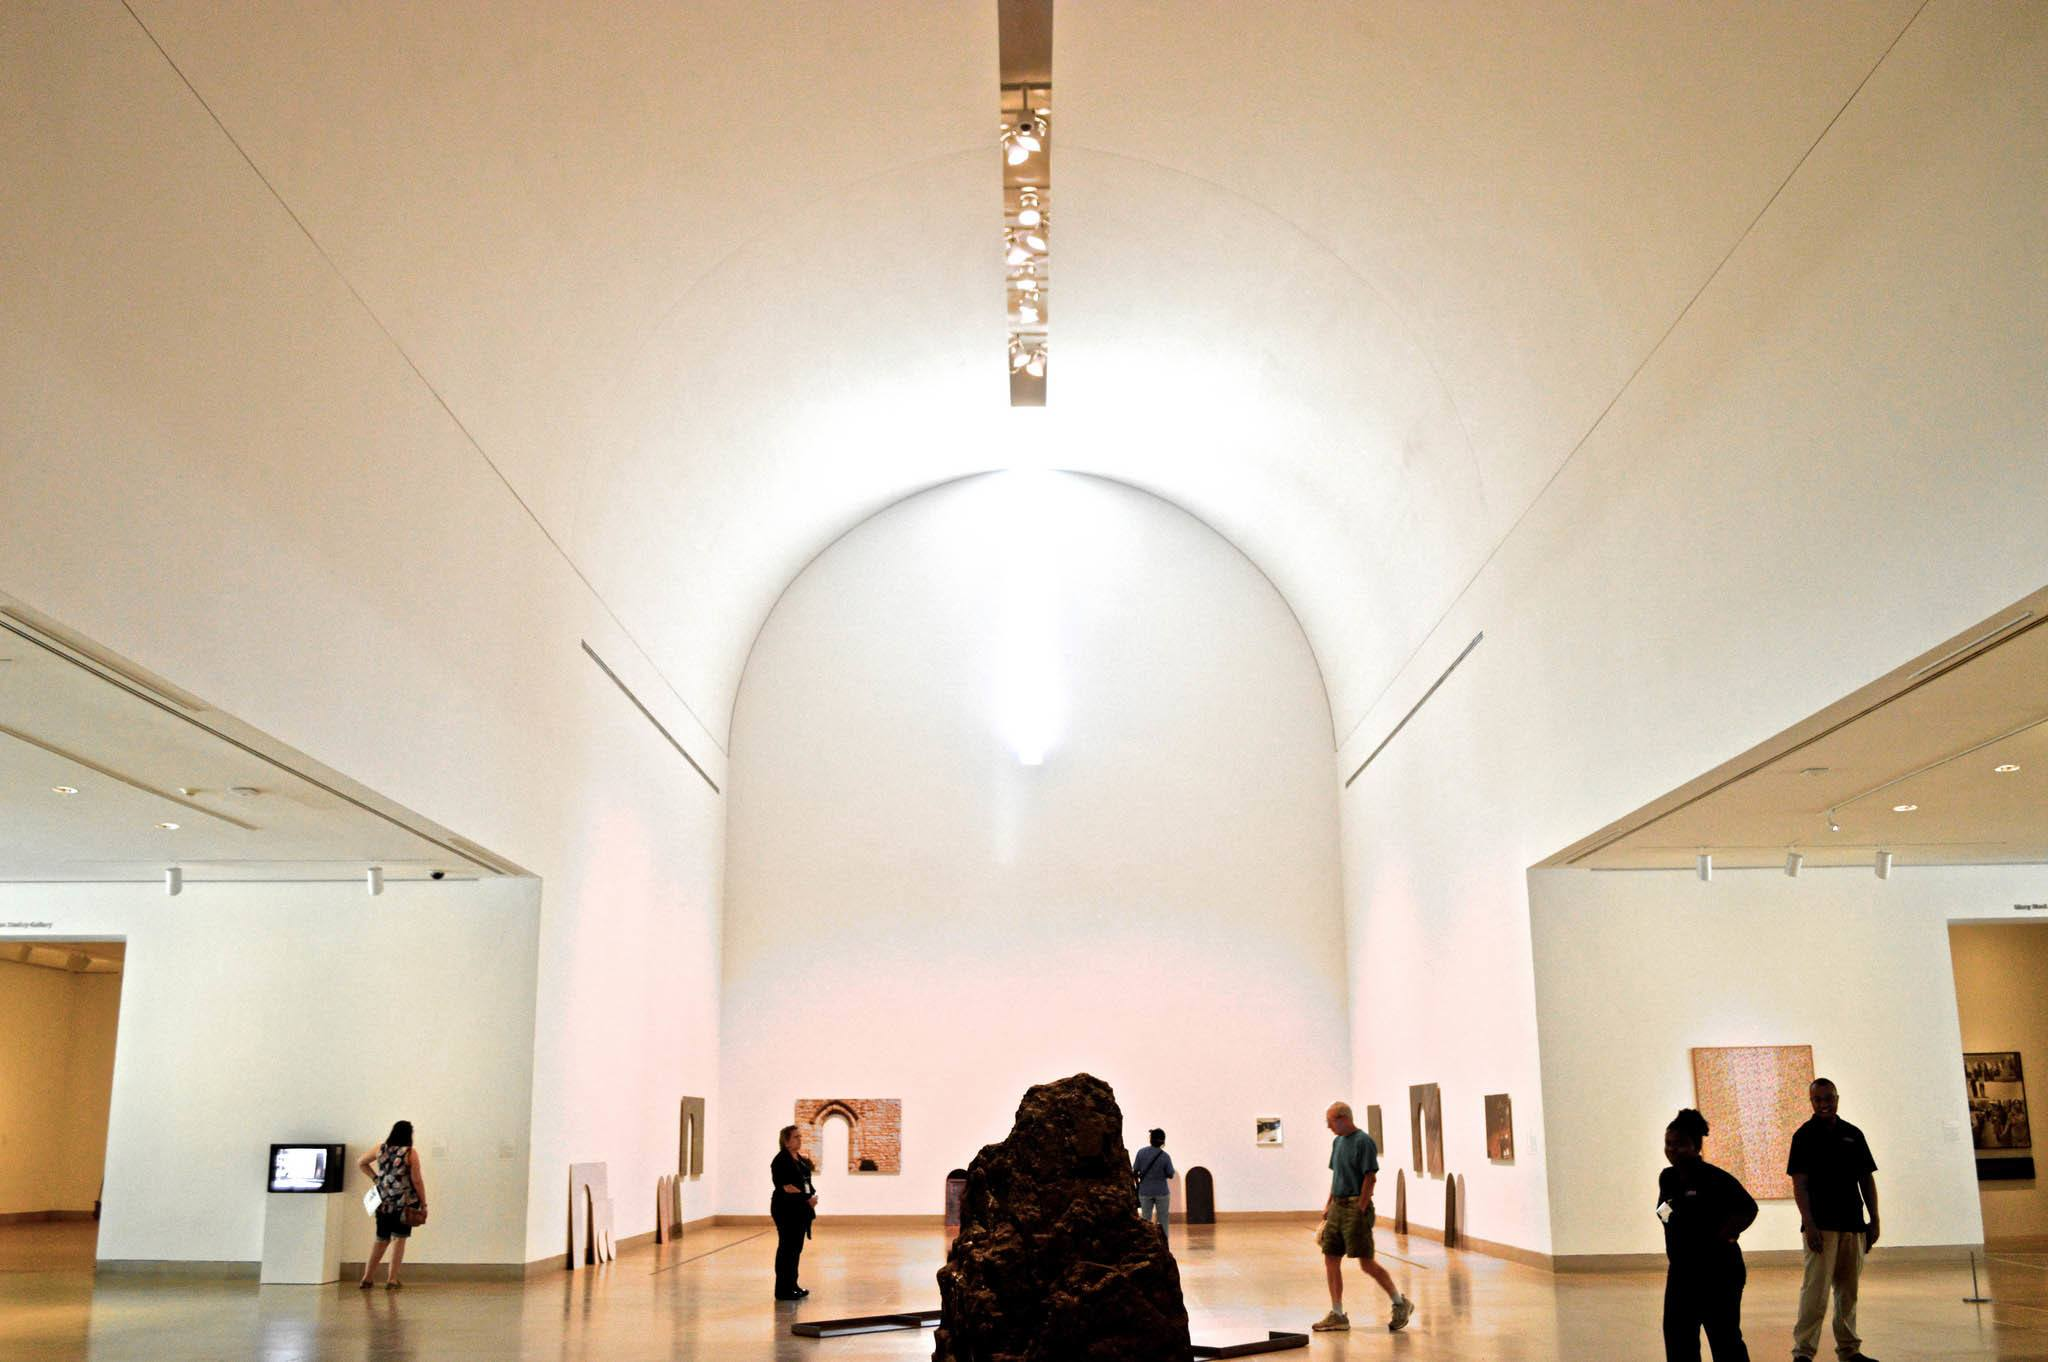 Large white rooms with paintings and visitors